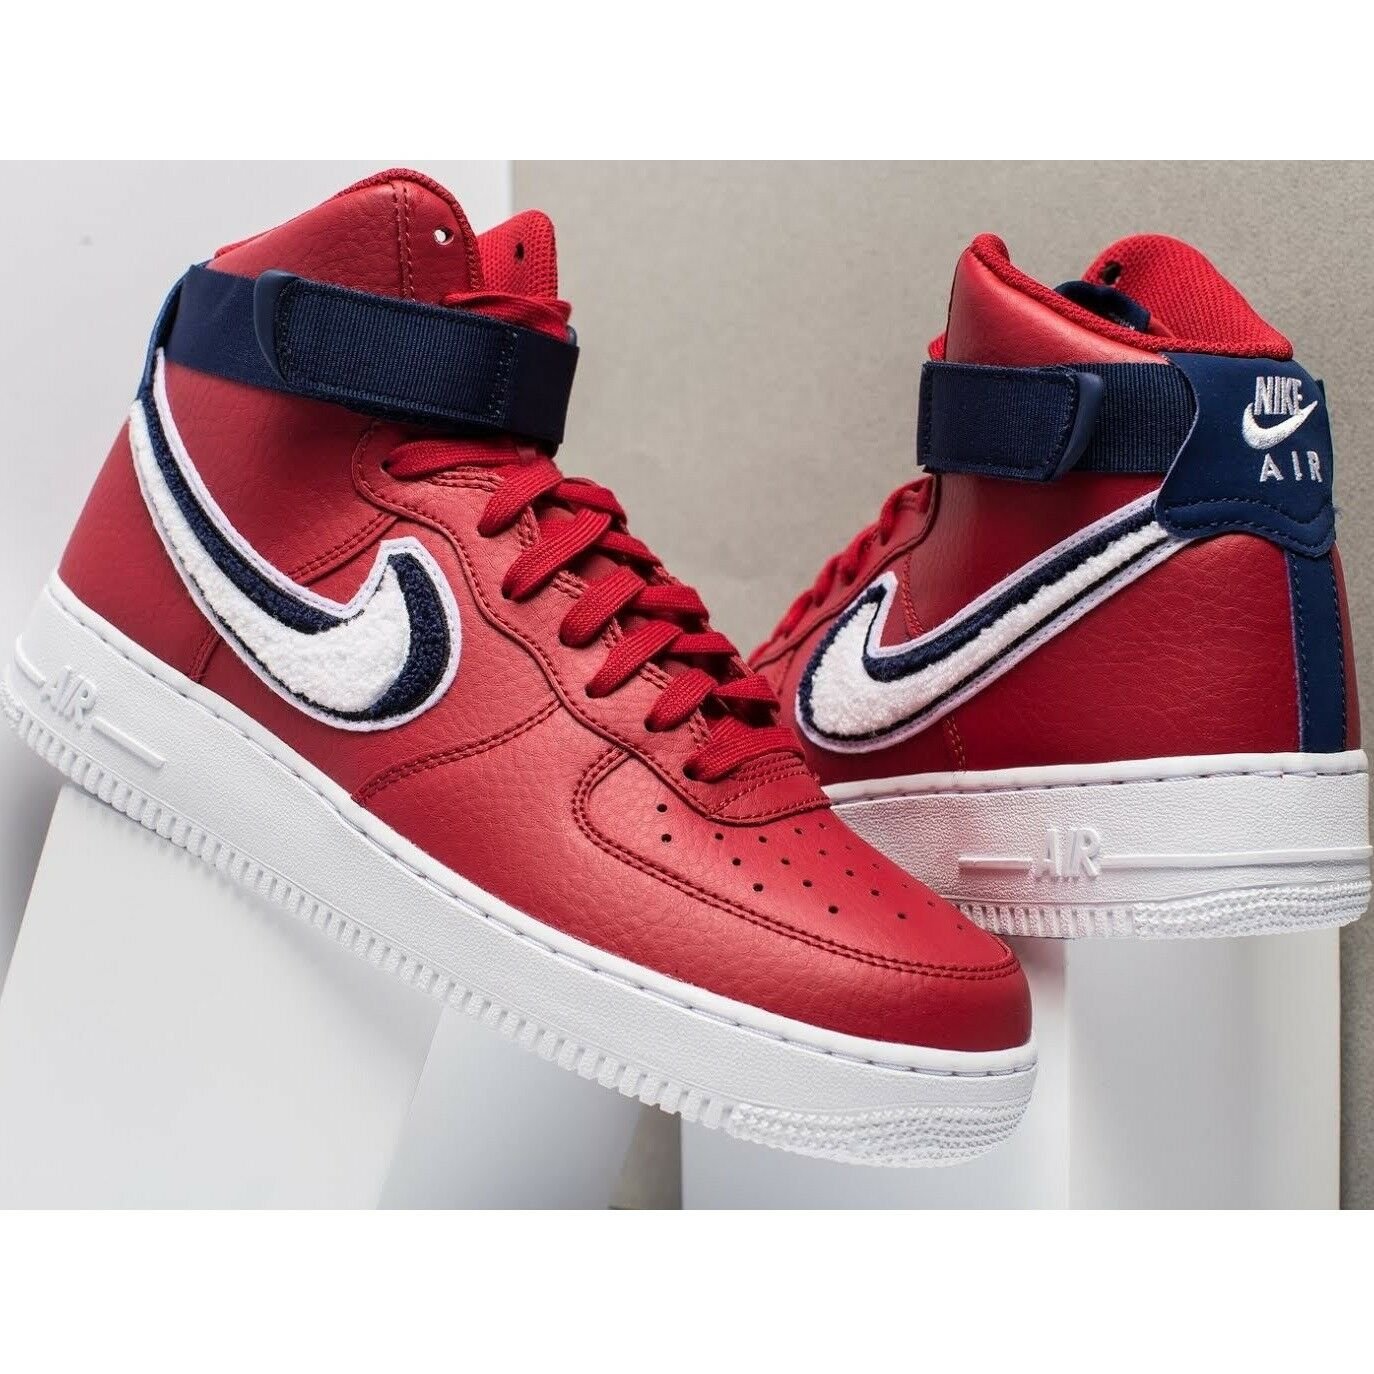 Nike Air Force 1 High 07 Lv8 CHENILLE SWOOSH Men's Shoes Lifestyle Comfy Sneaker